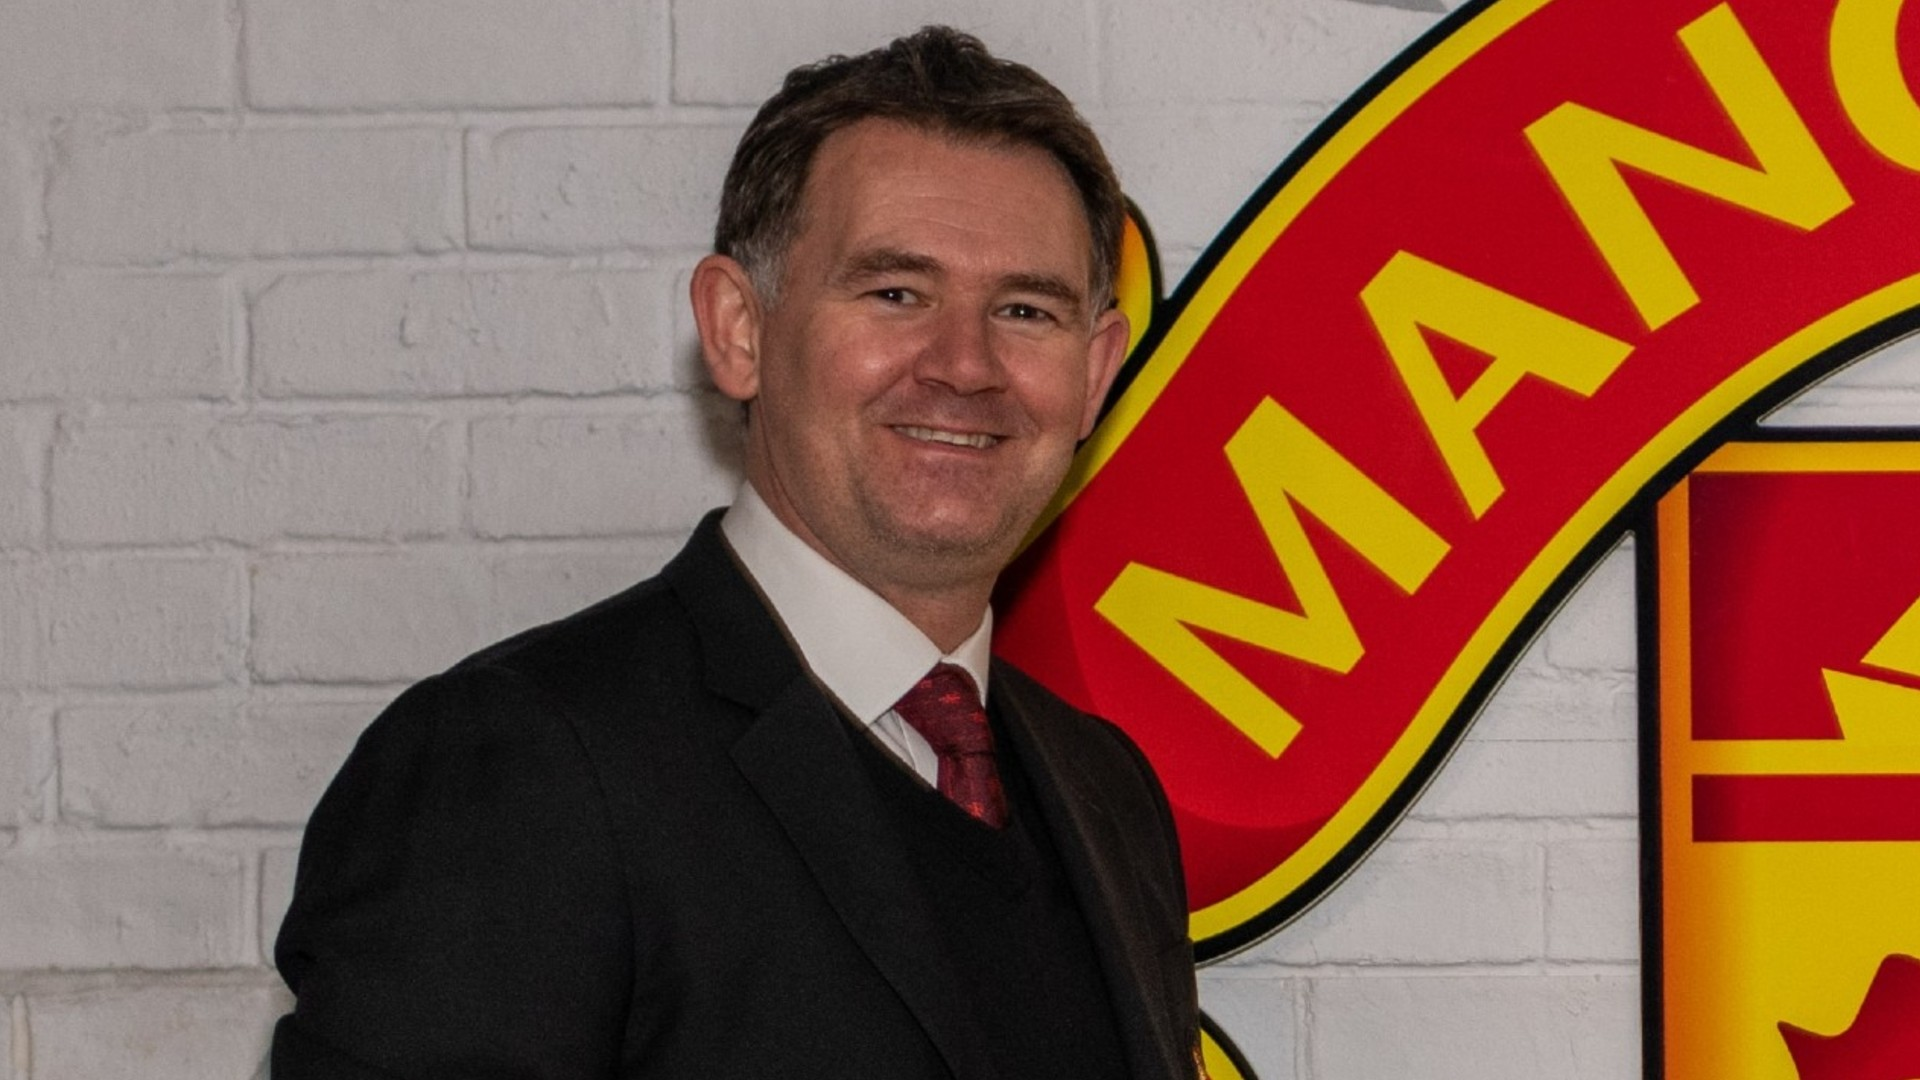 Who is Manchester United's director of football & is he in charge of transfers or Solskjaer?